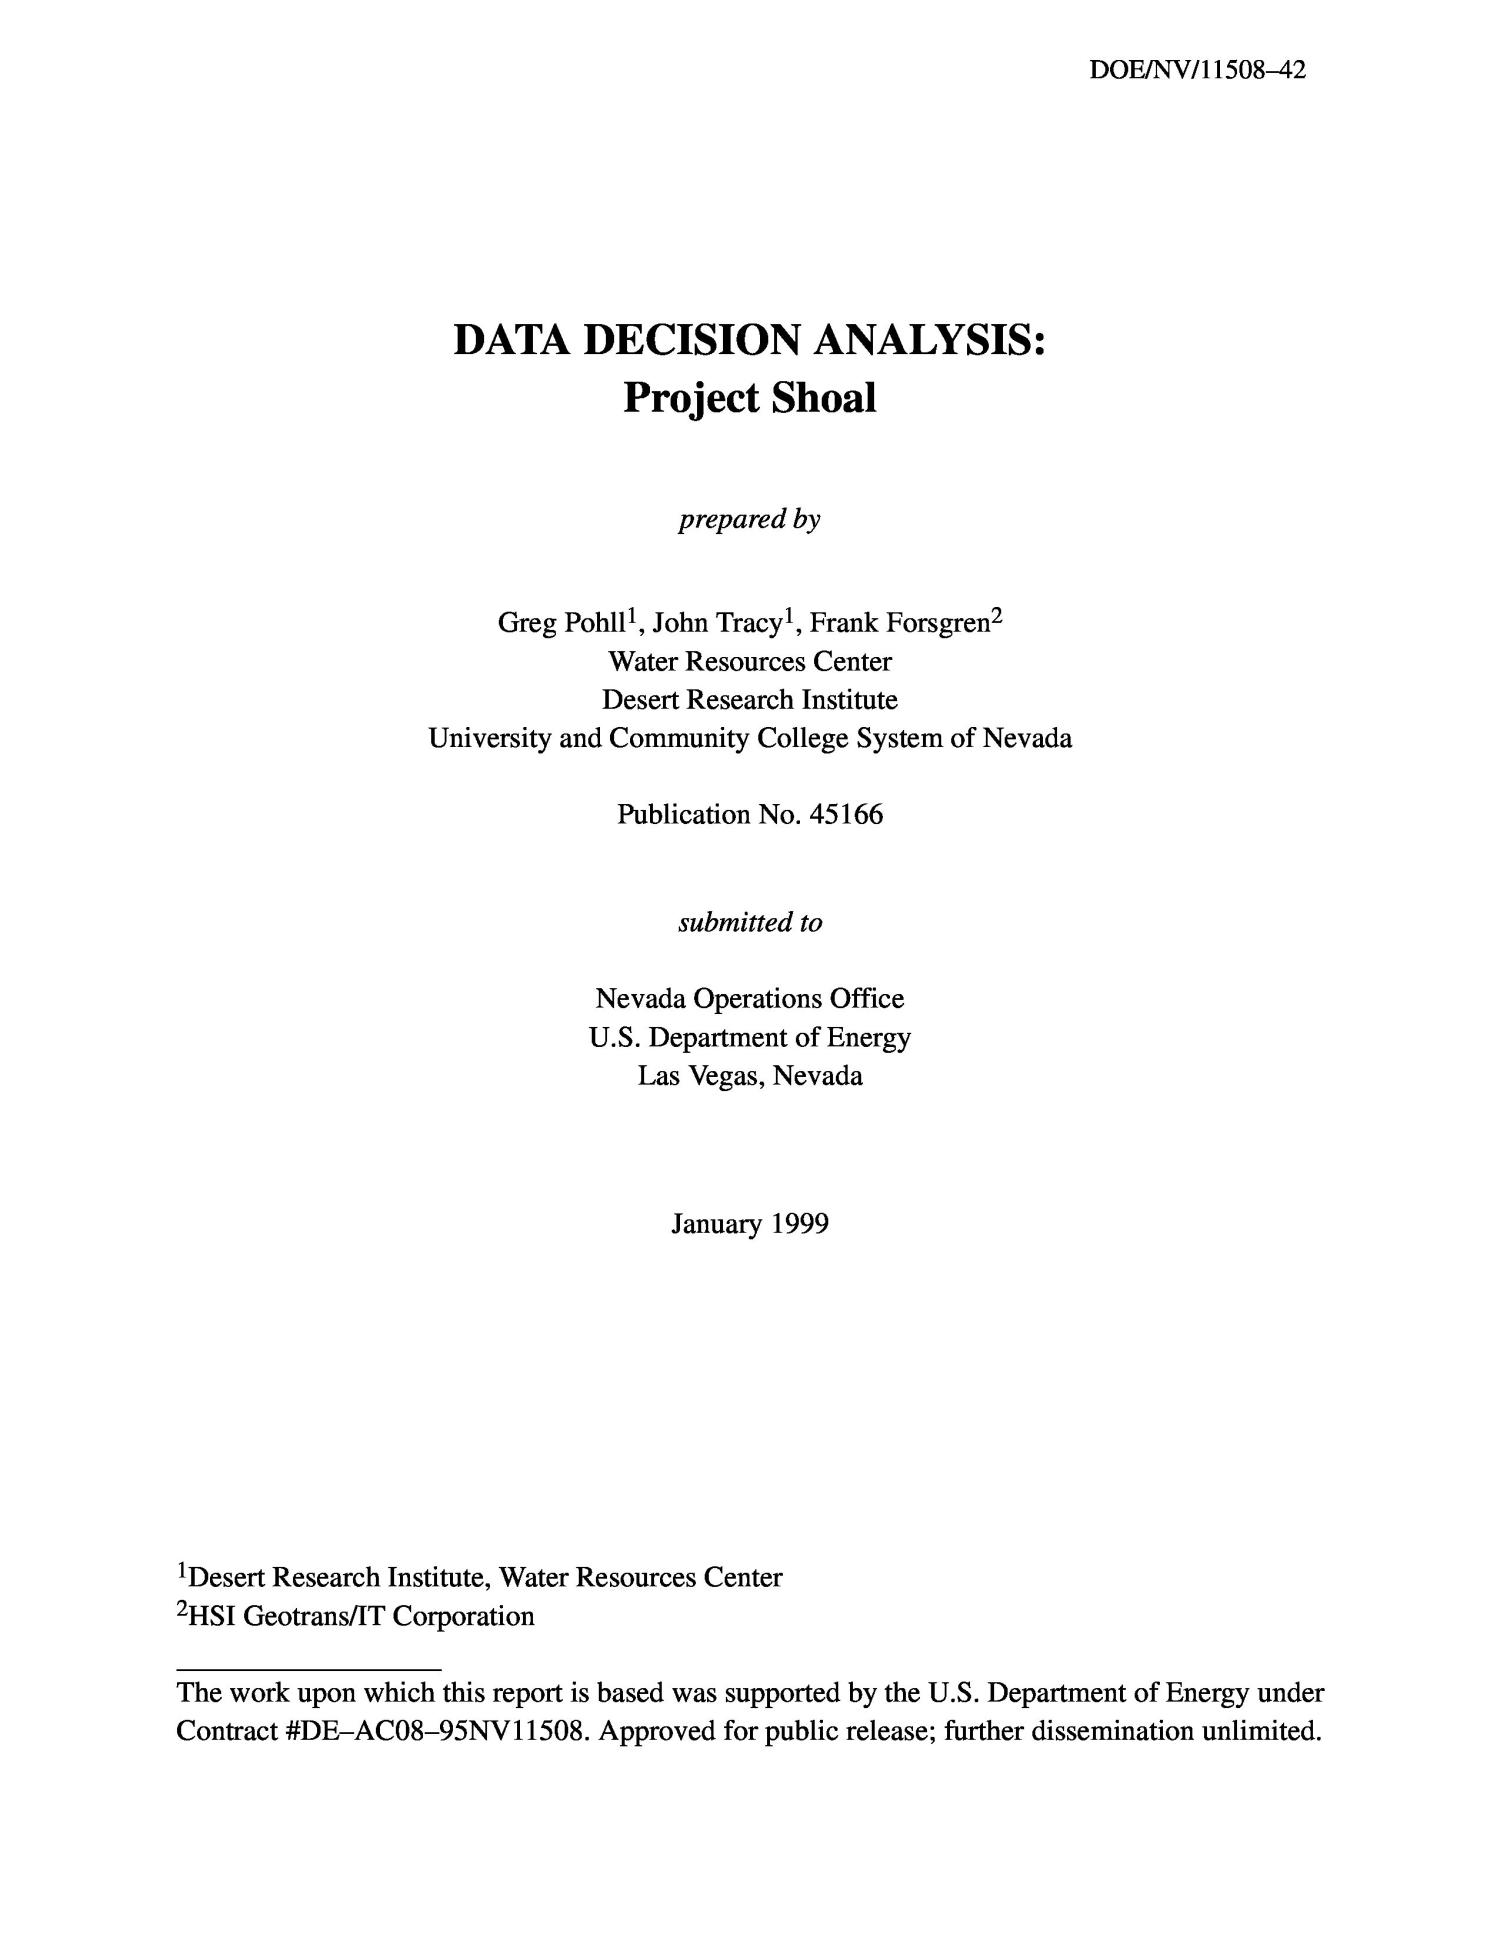 Data Decision Analysis: Project Shoal                                                                                                      [Sequence #]: 3 of 74